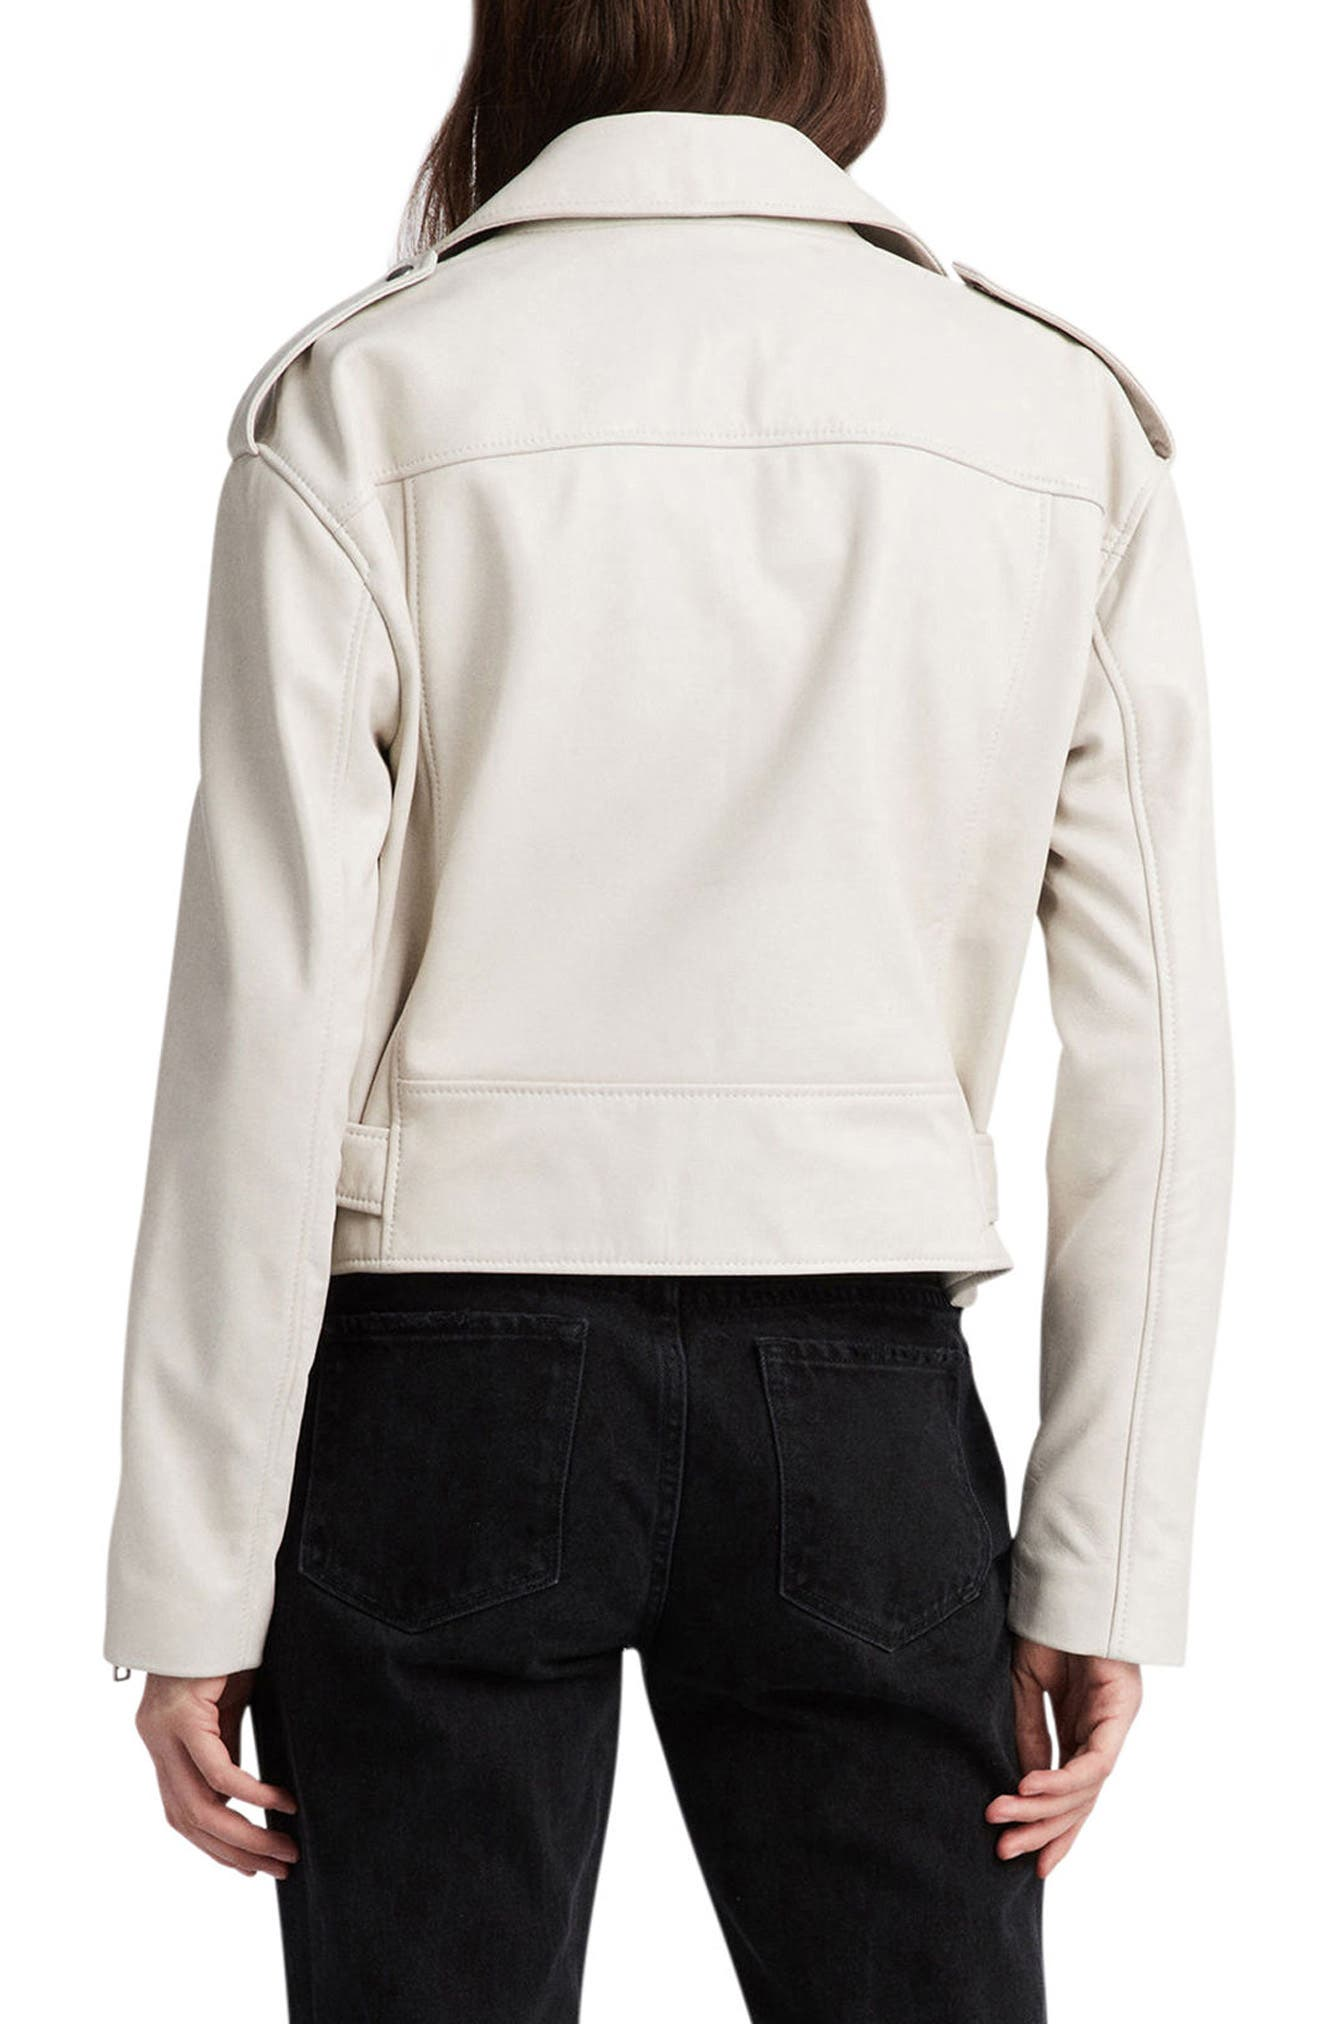 Anderson Sheepskin Leather Biker Jacket,                             Alternate thumbnail 2, color,                             100